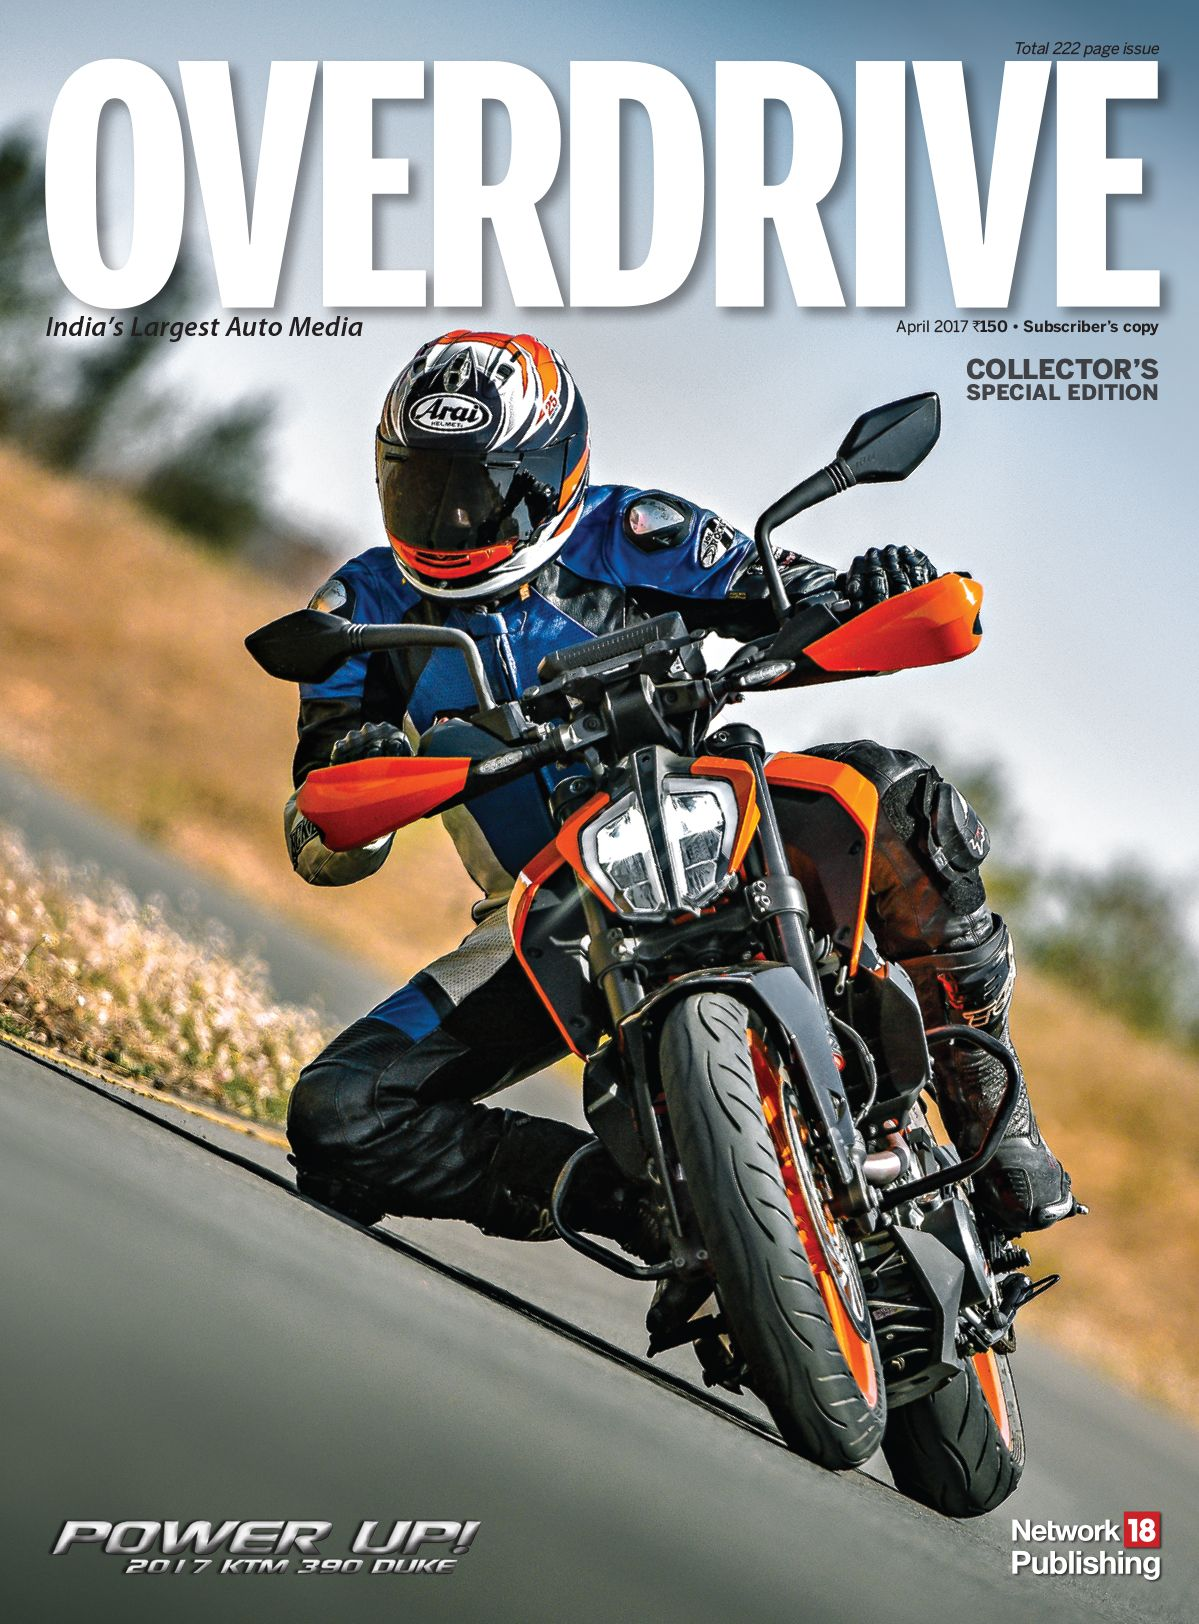 Overdrive Magazine April 2017 Subscriber Cover Bike Prices